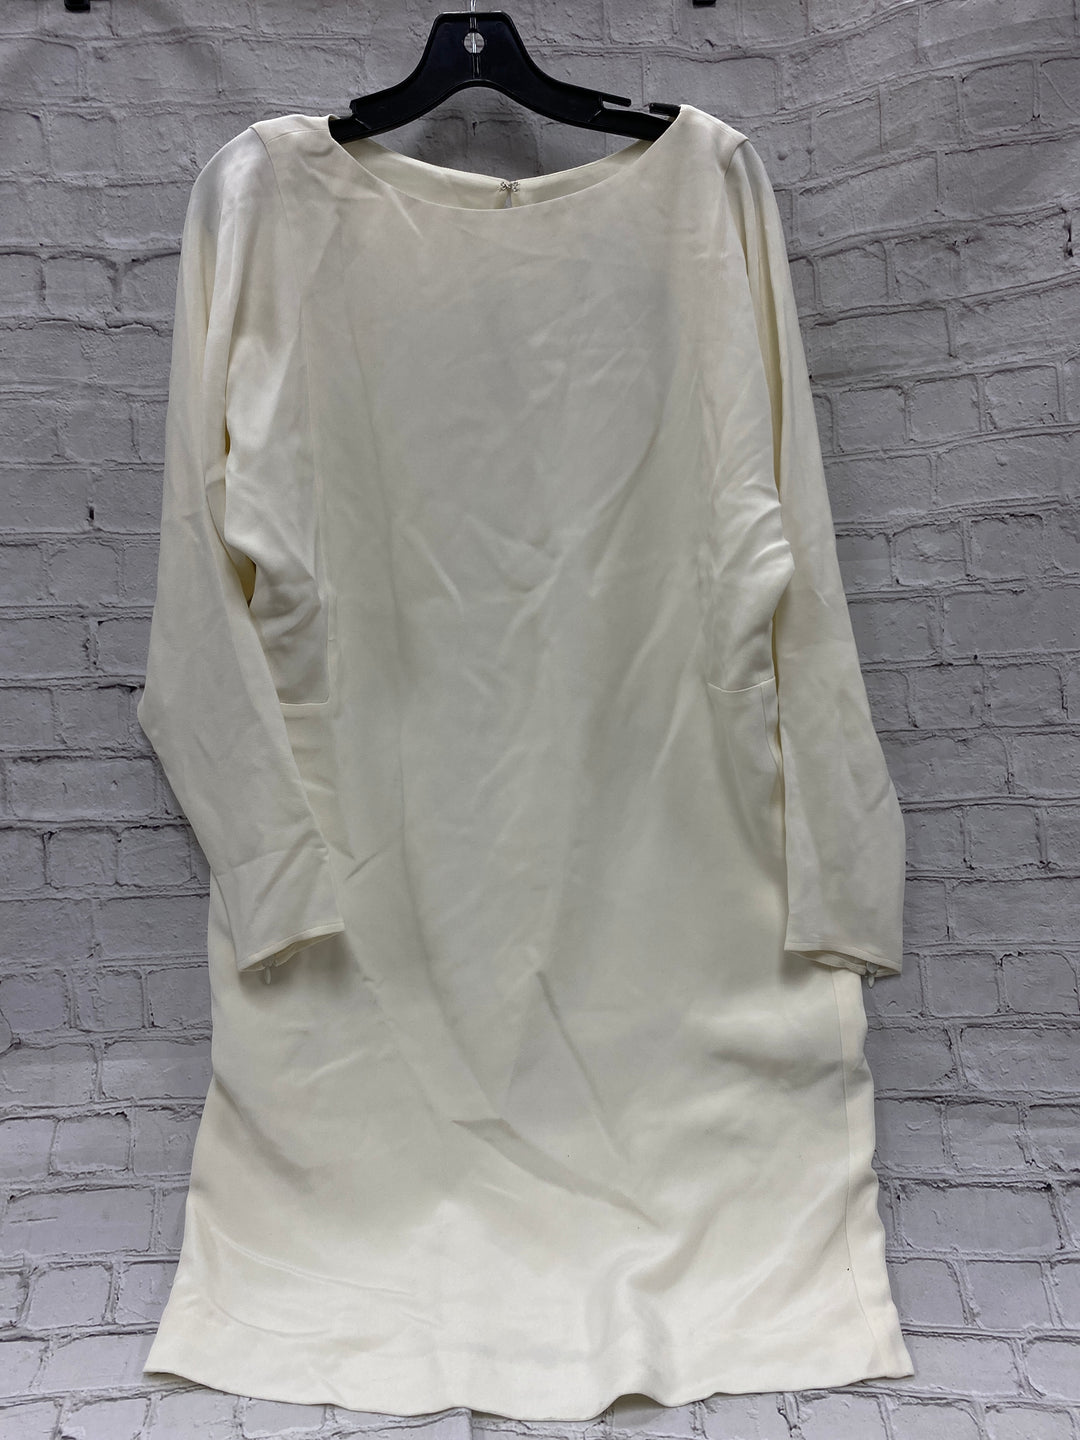 Primary Photo - BRAND: POLO RALPH LAUREN <BR>STYLE: DRESS SHORT LONG SLEEVE <BR>COLOR: WHITE <BR>SIZE: 6 <BR>OTHER INFO: NEW WITH TAGS!! <BR>SKU: 115-115314-7723